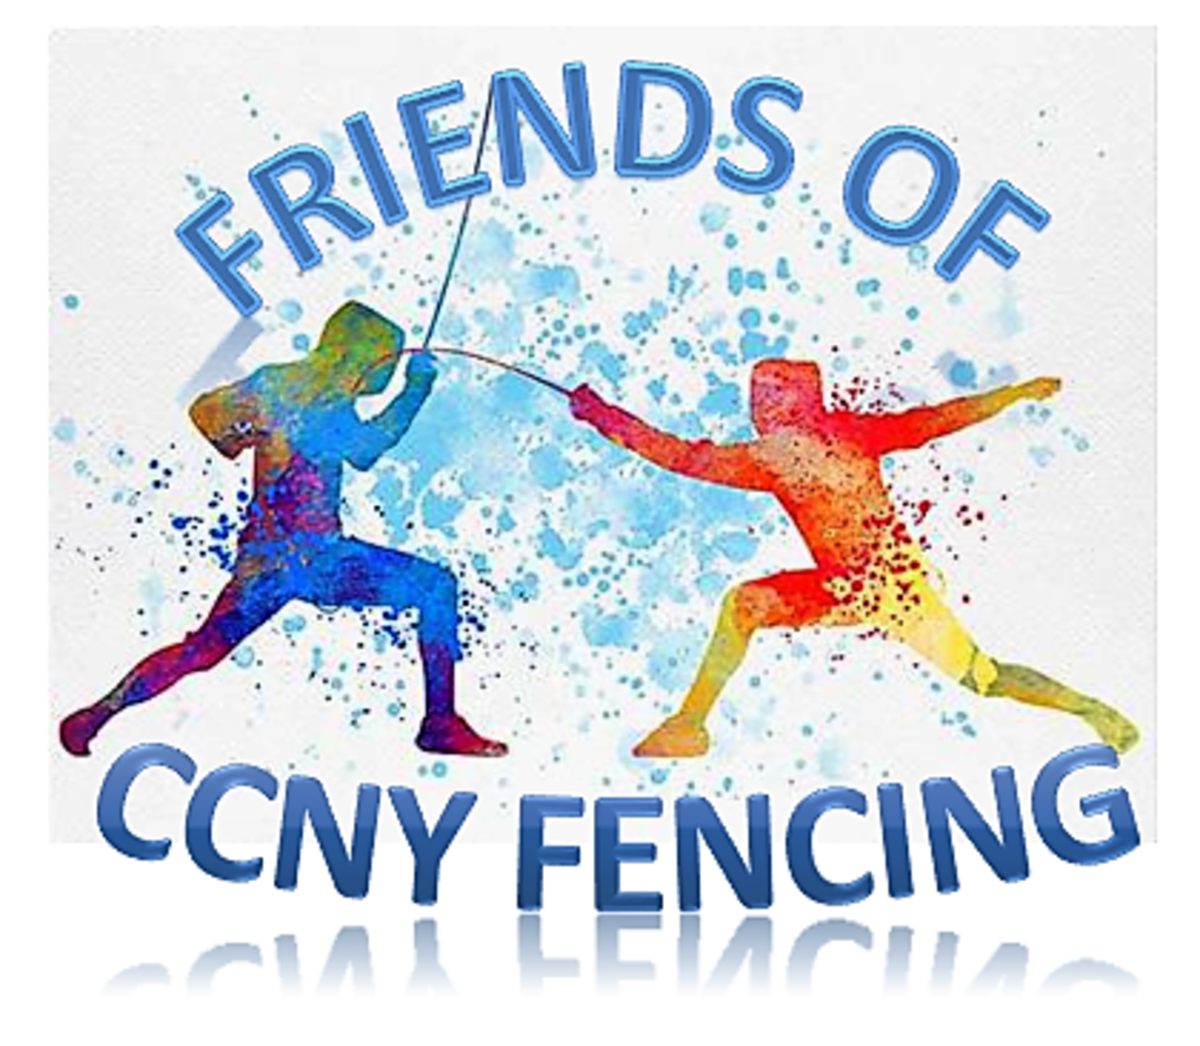 Friends of CCNY Fencing